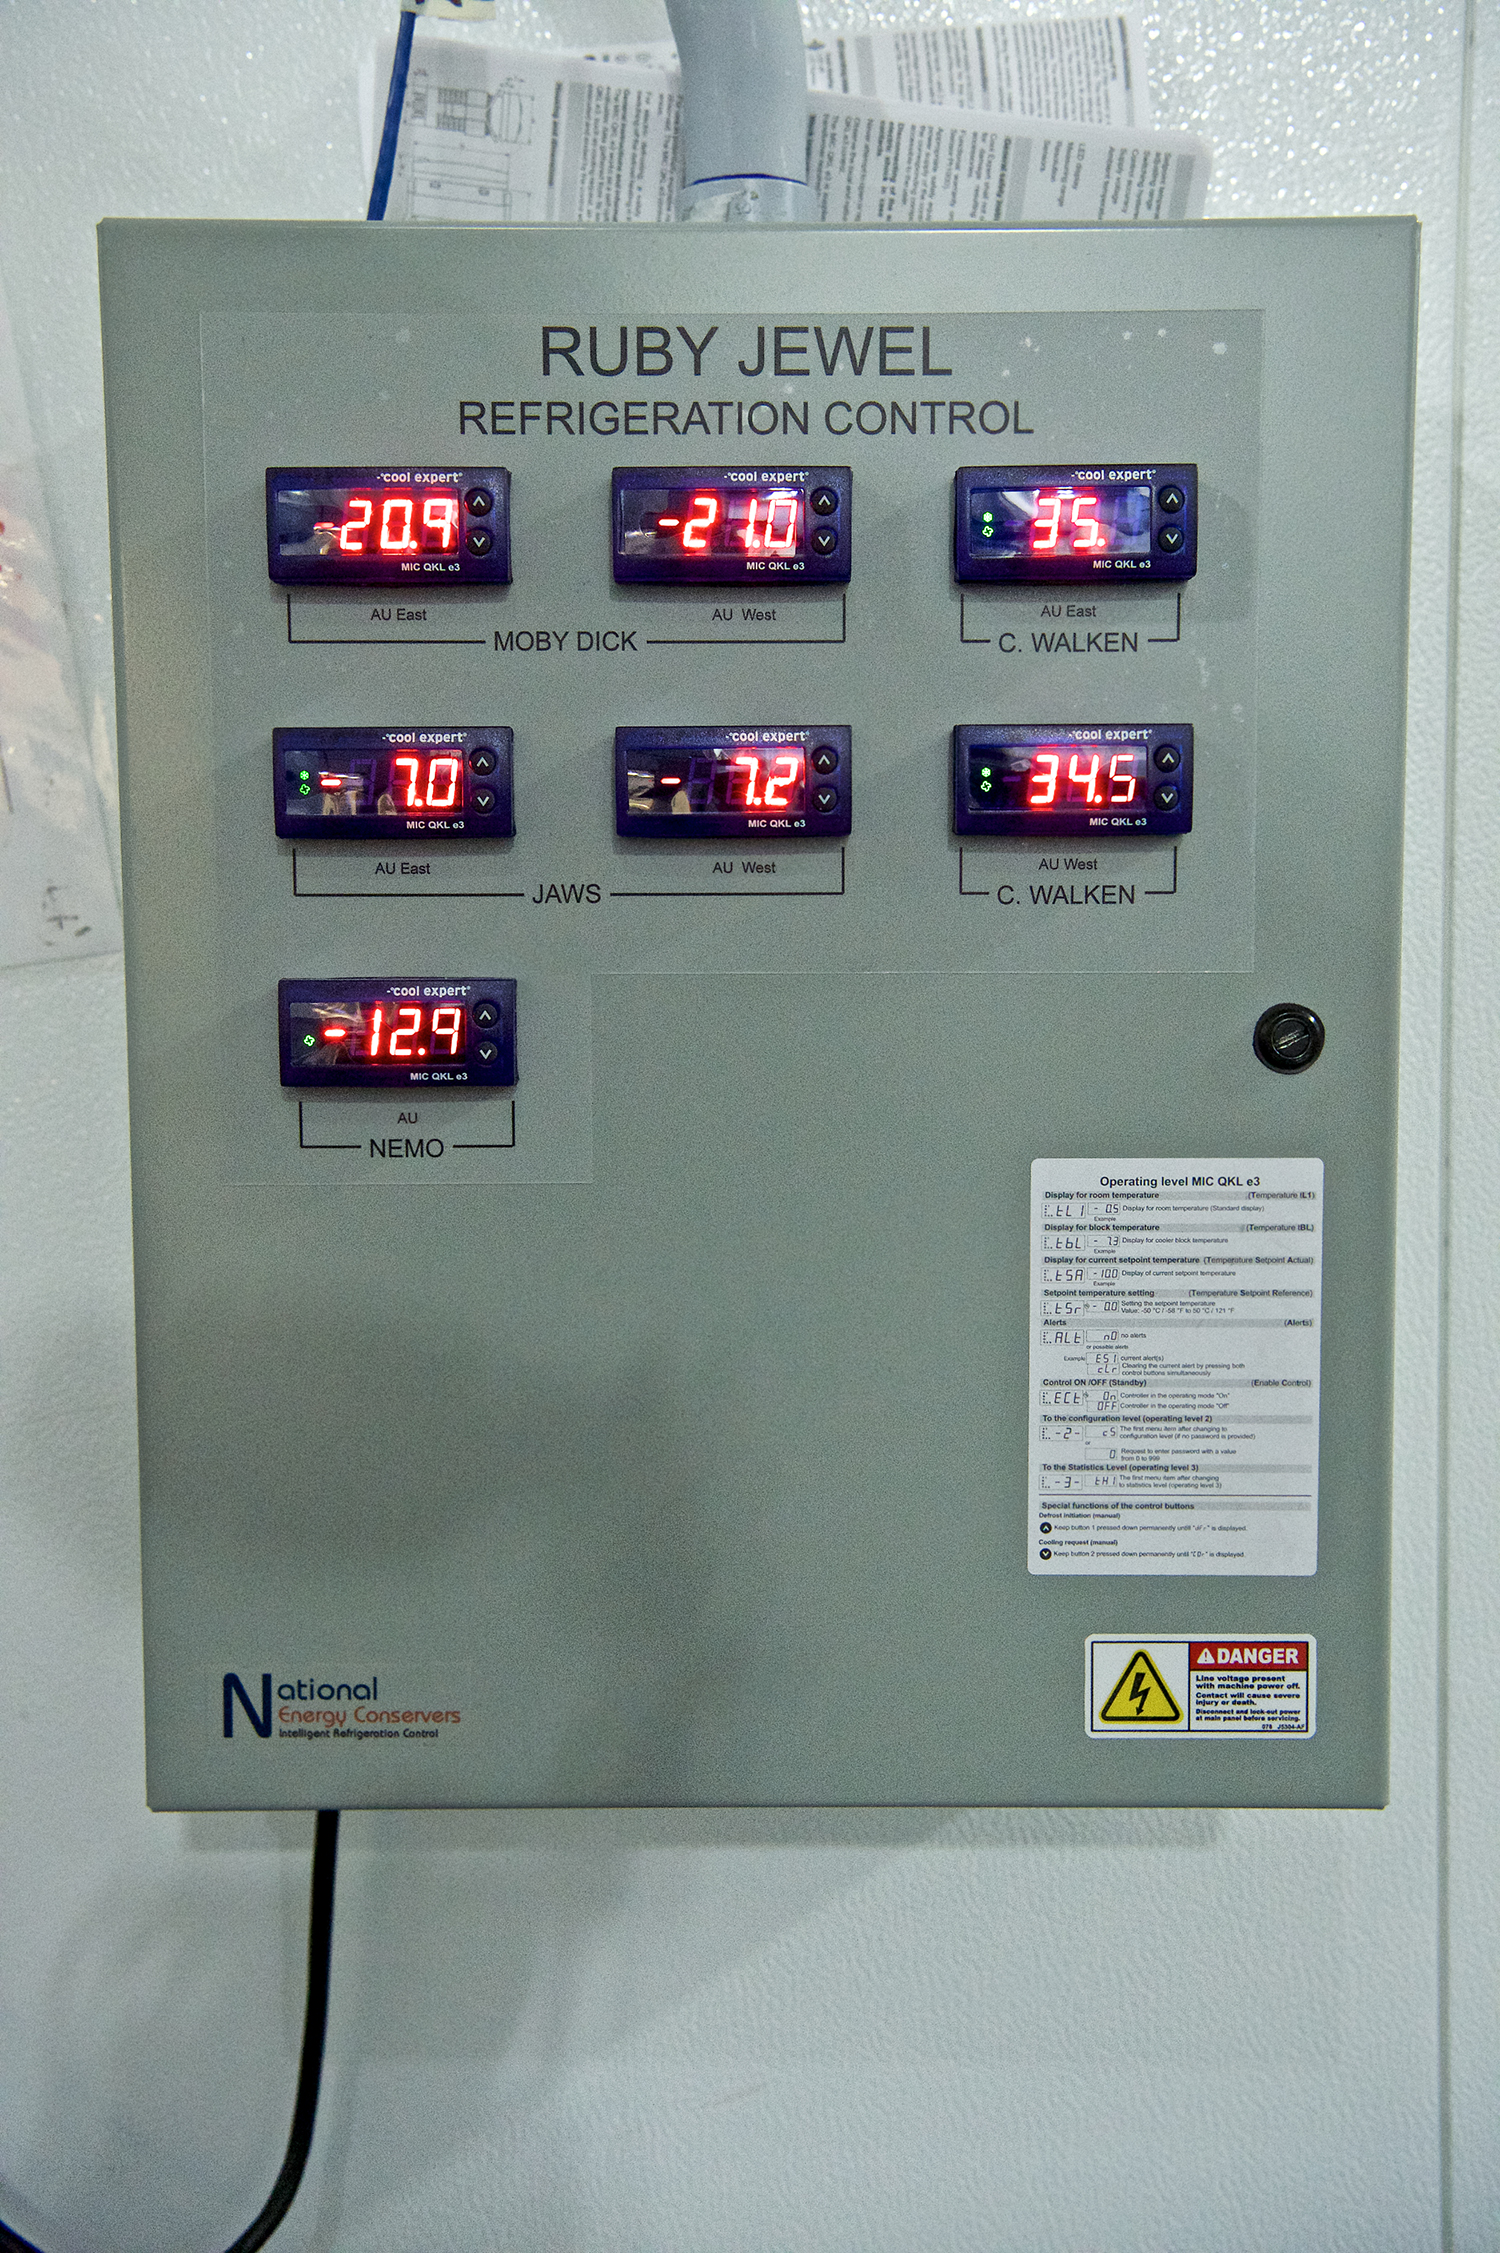 a control panel for the refrigeration control